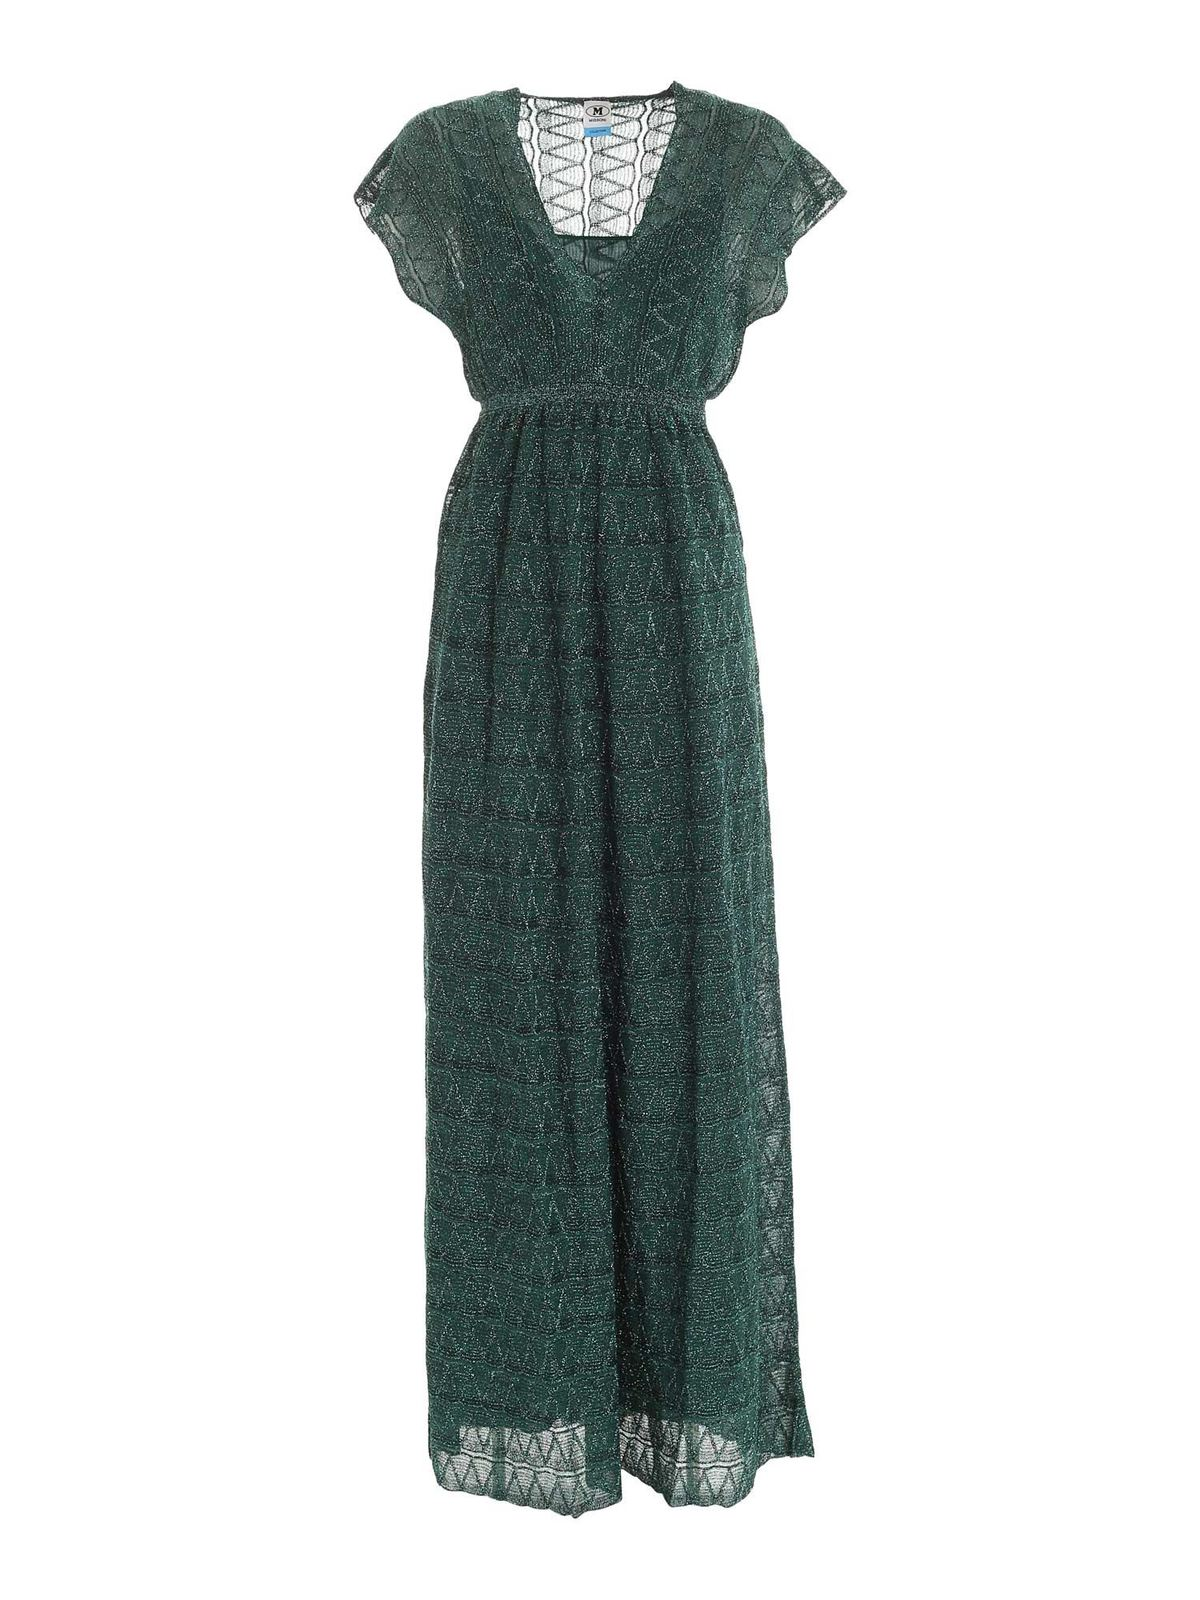 M Missoni LAME PATTERN DRESS IN GREEN